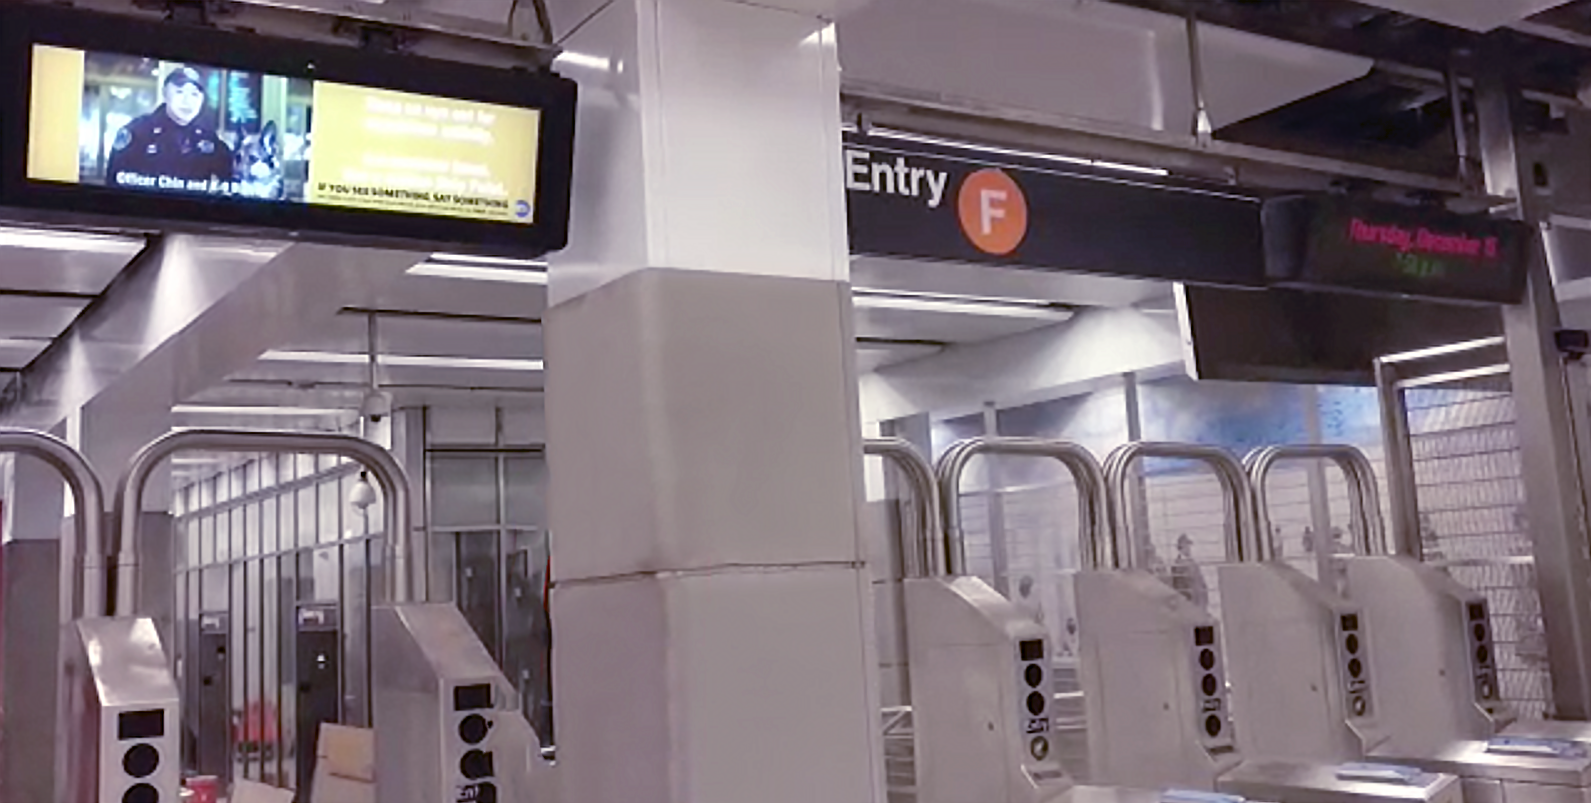 Display Solari per la 2nd avenue subway